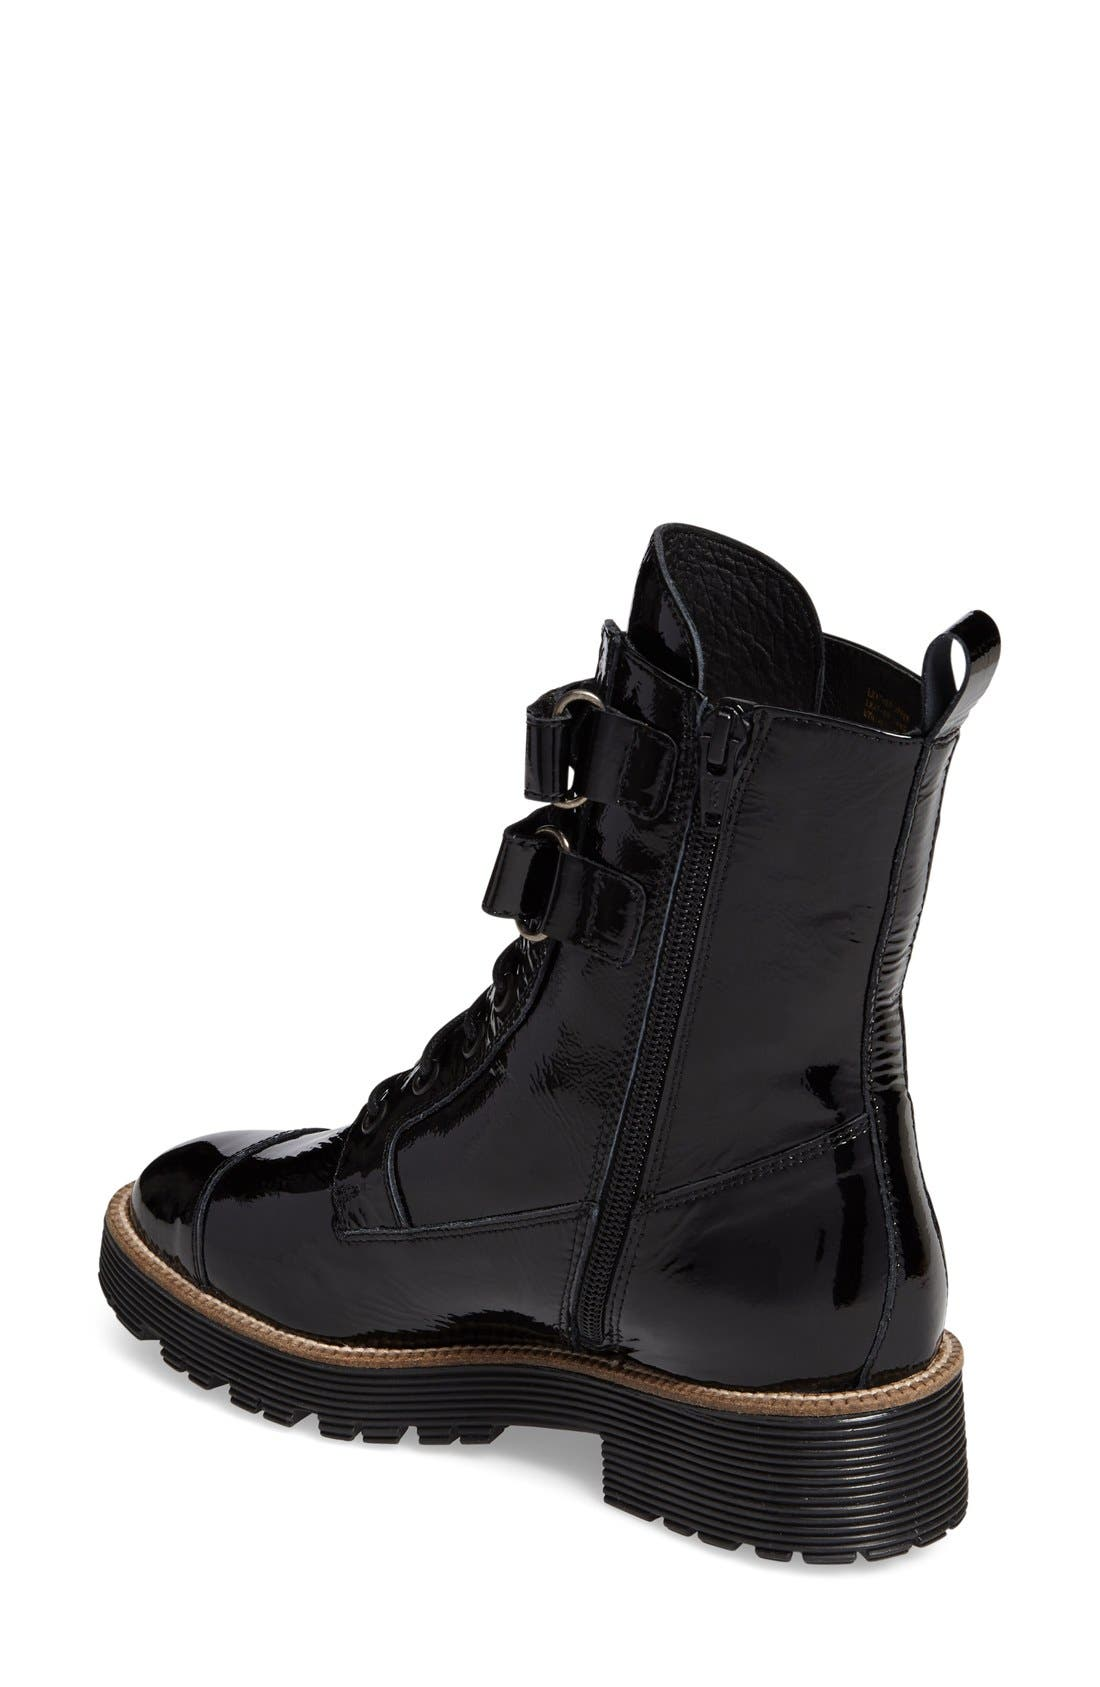 Tyra Combat Boot,                             Alternate thumbnail 5, color,